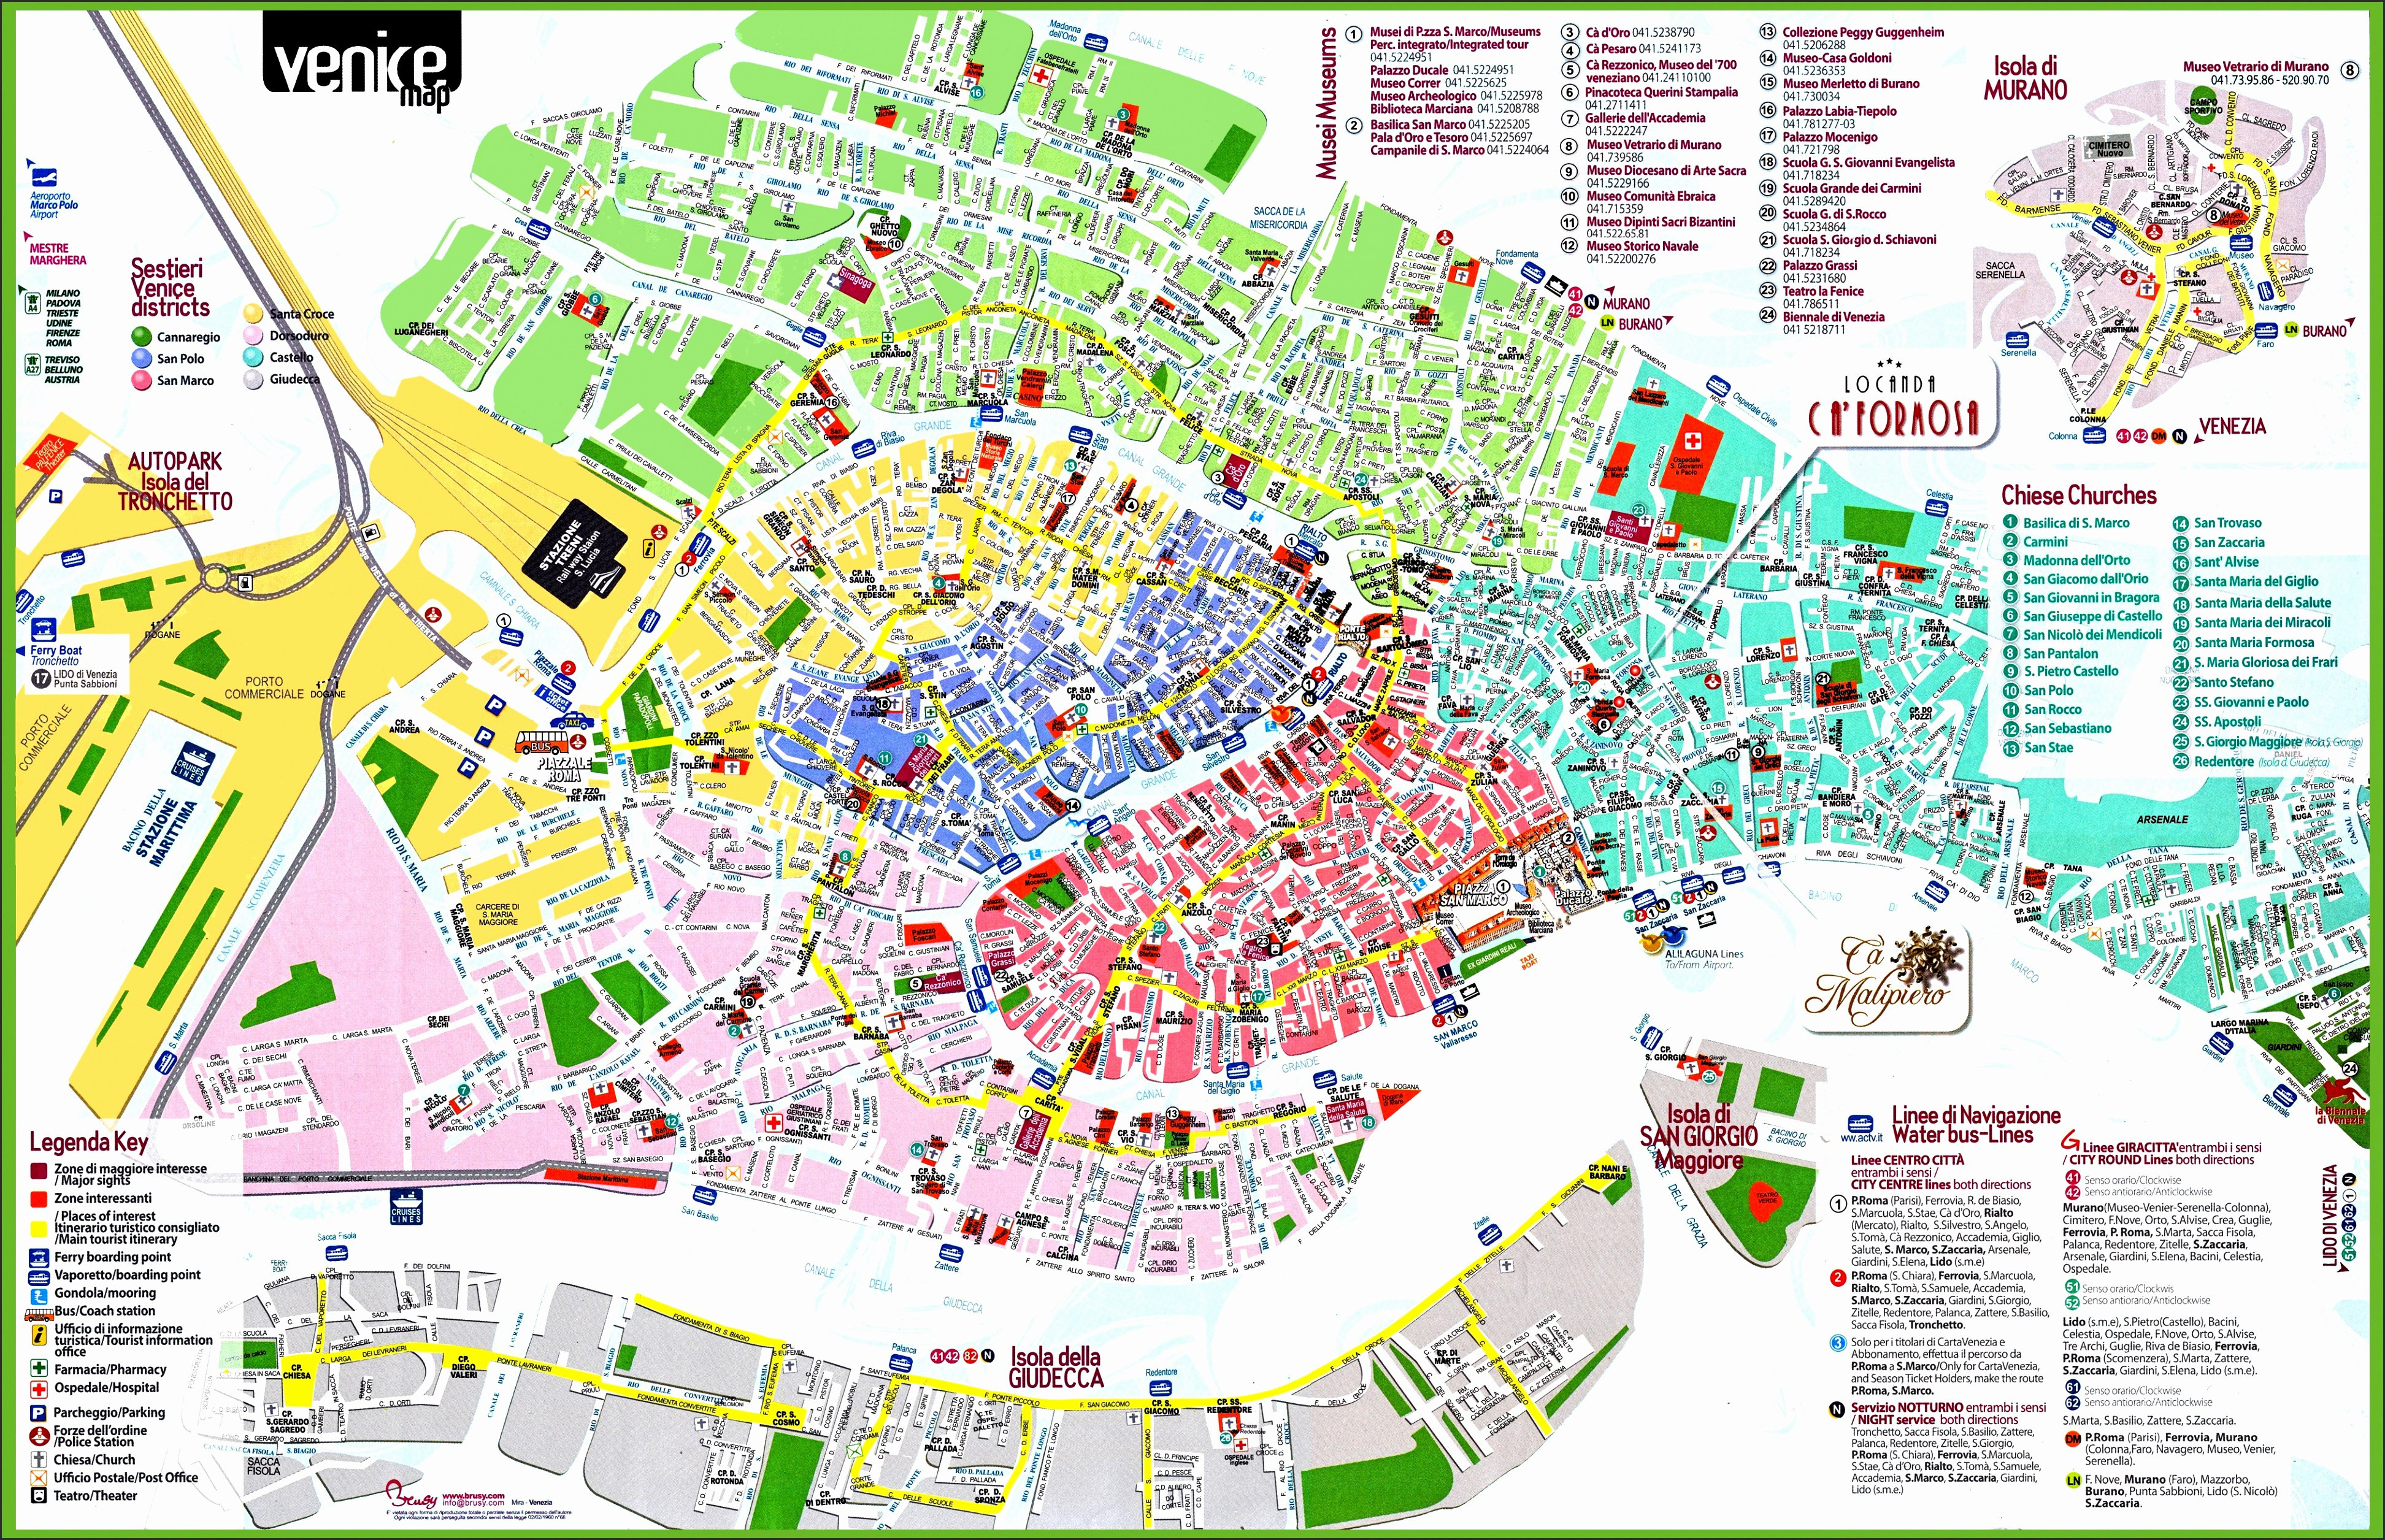 firenze tourist map florence maps top tourist attractions free Tourism In The Chianti Guide To Museums In Florence And Main THE BEST Things to Do in Pisa